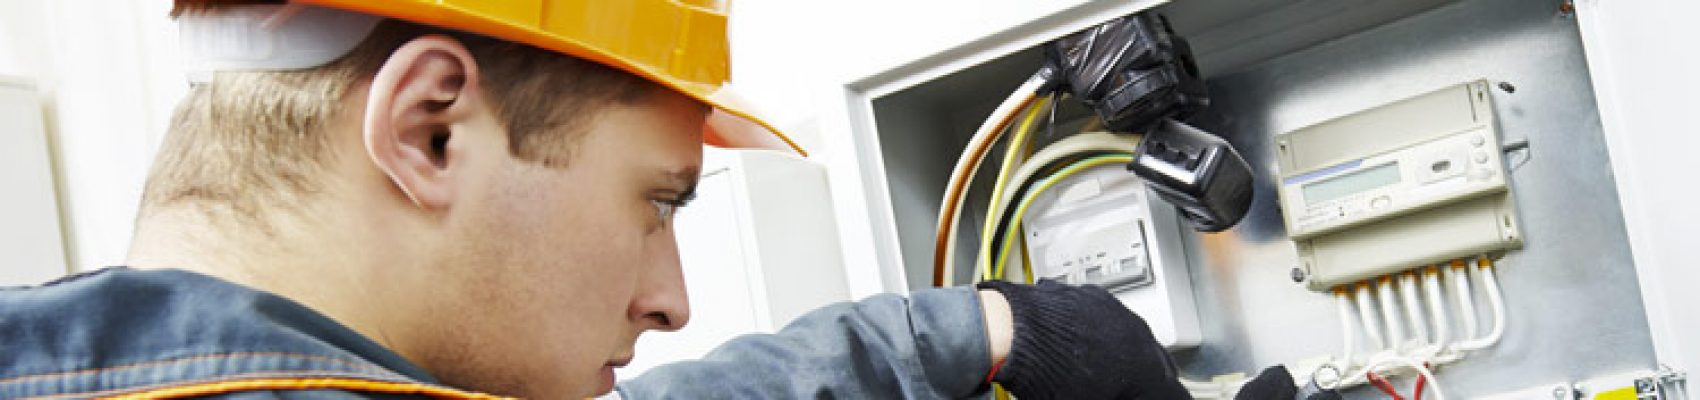 Omnitech Systems  | Routers for Electrical Contractors & Plumbers